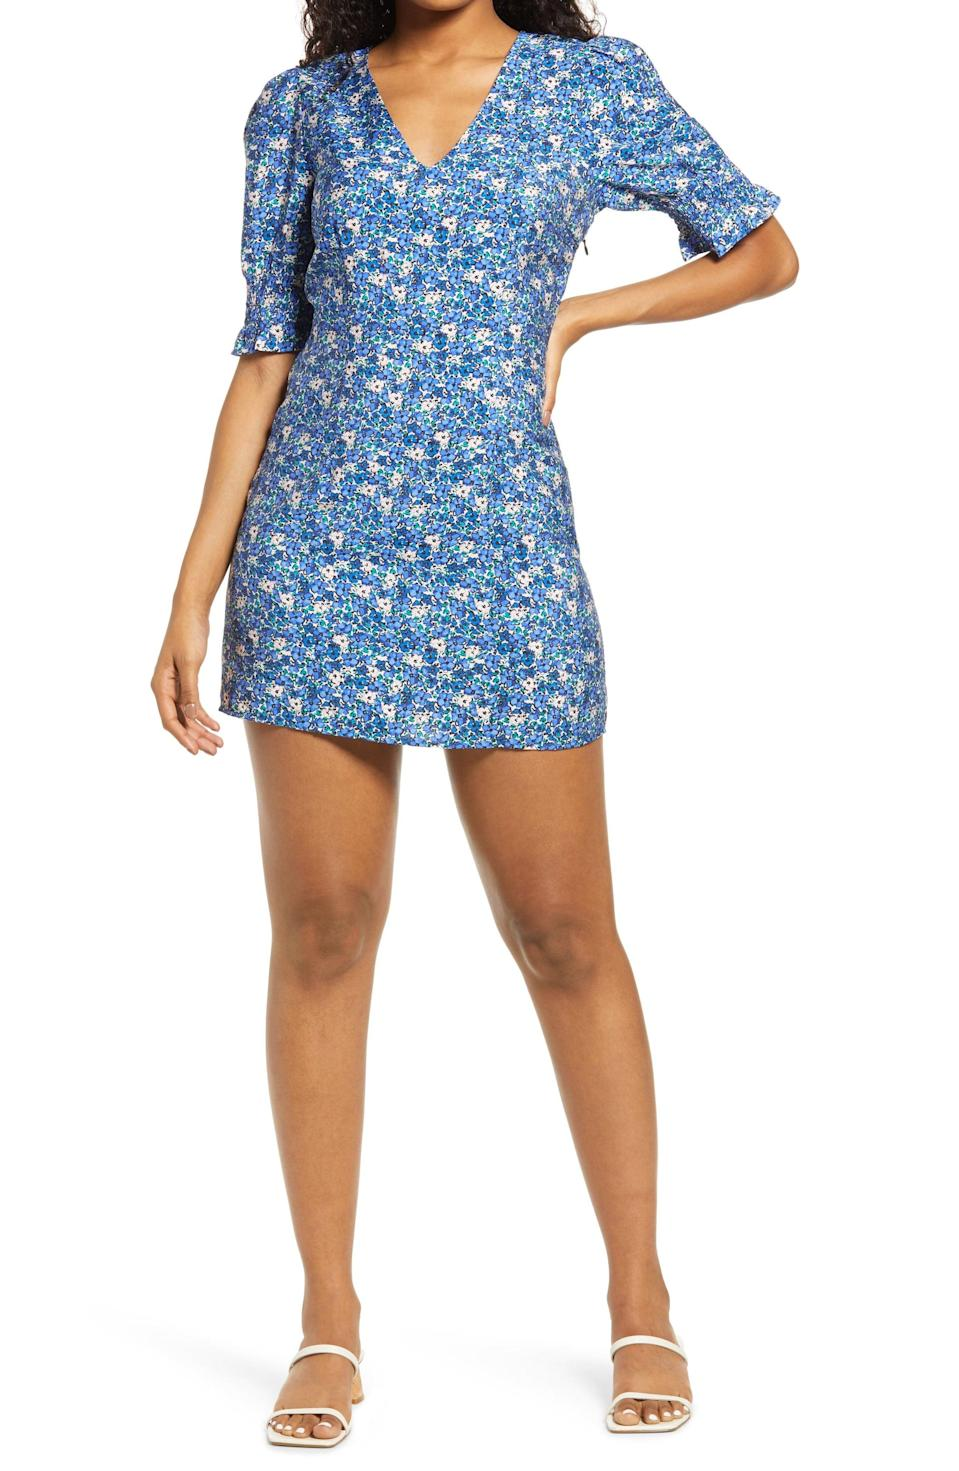 <p>This <span>Vero Moda Floral Dress</span> ($65) will look great with low-heeled sandals and a cross-body bag.</p>